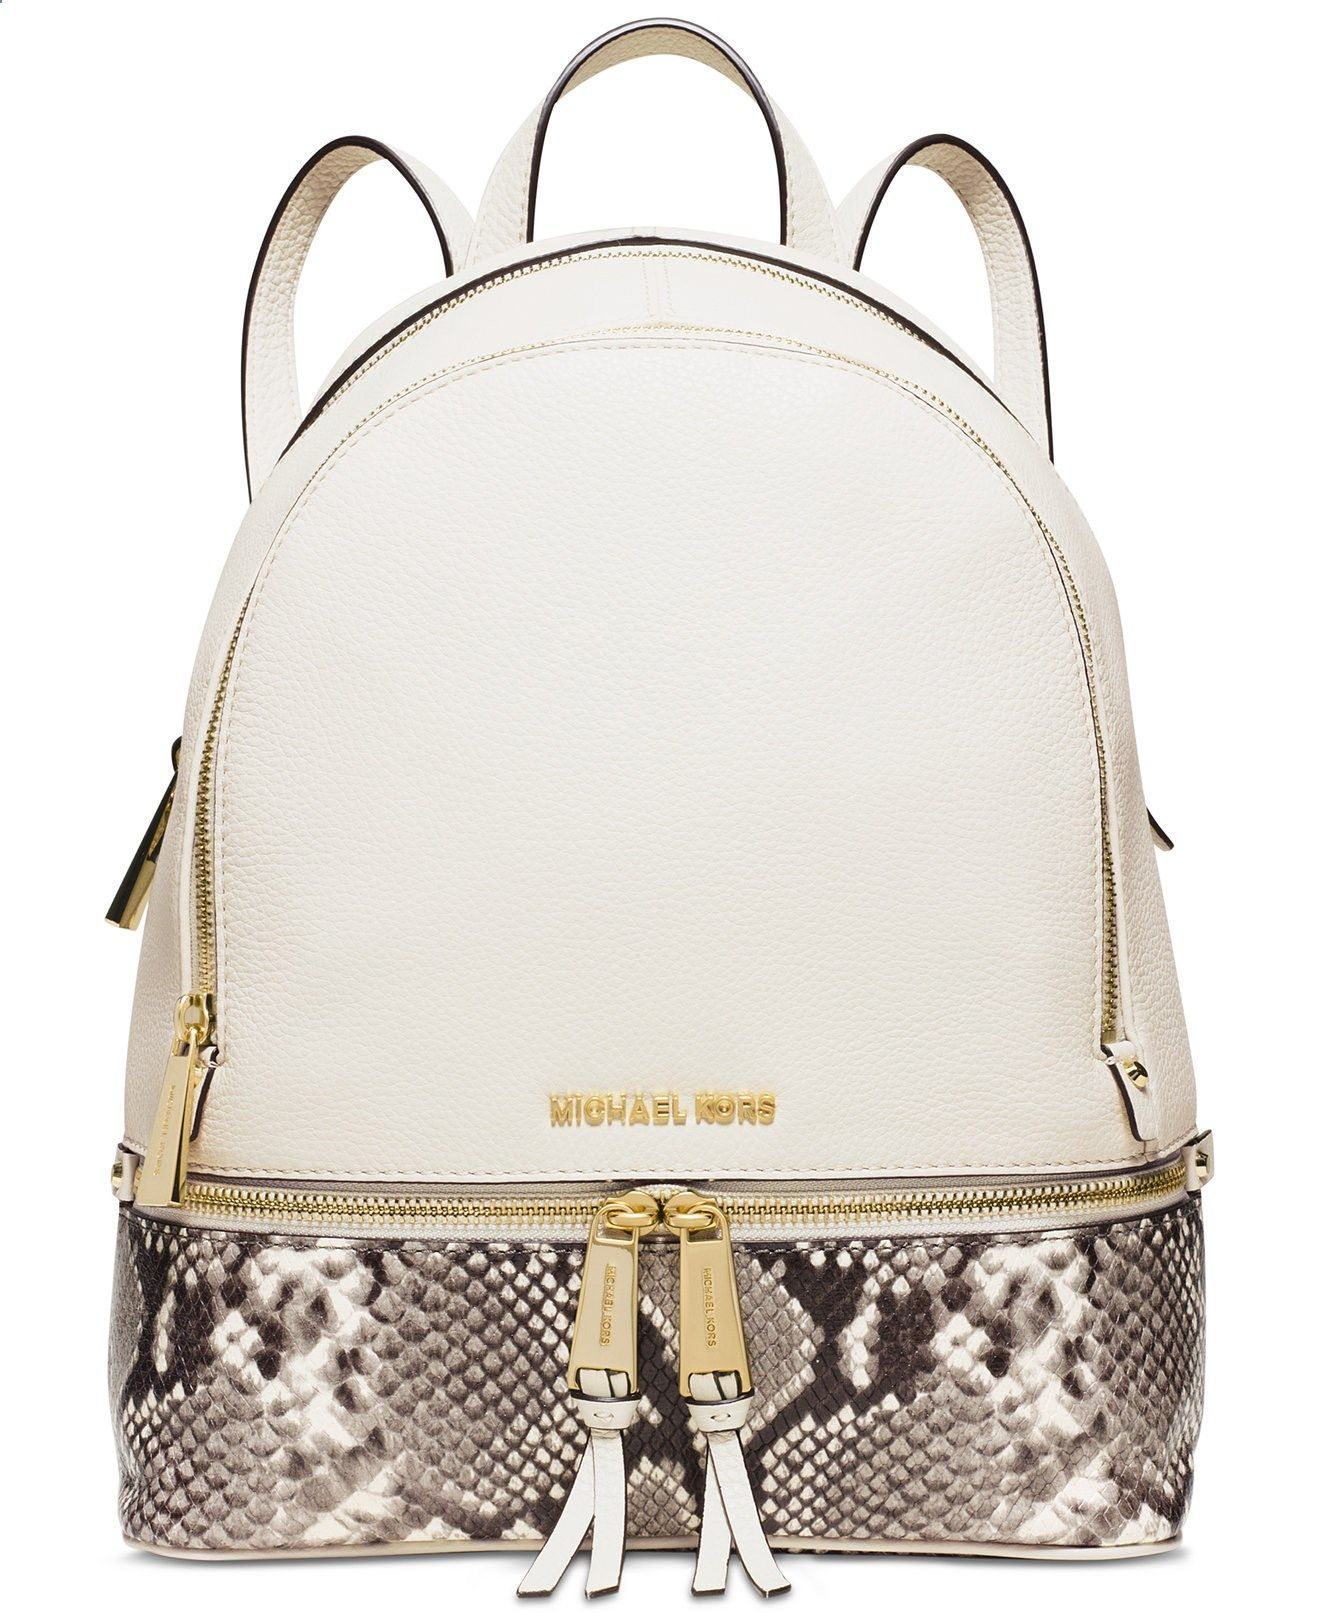 8d2f805a3afd ... MICHAEL Michael Kors Rhea Zip Medium Backpack - MICHAEL Michael Kors - Handbags  Accessories - Macys ...